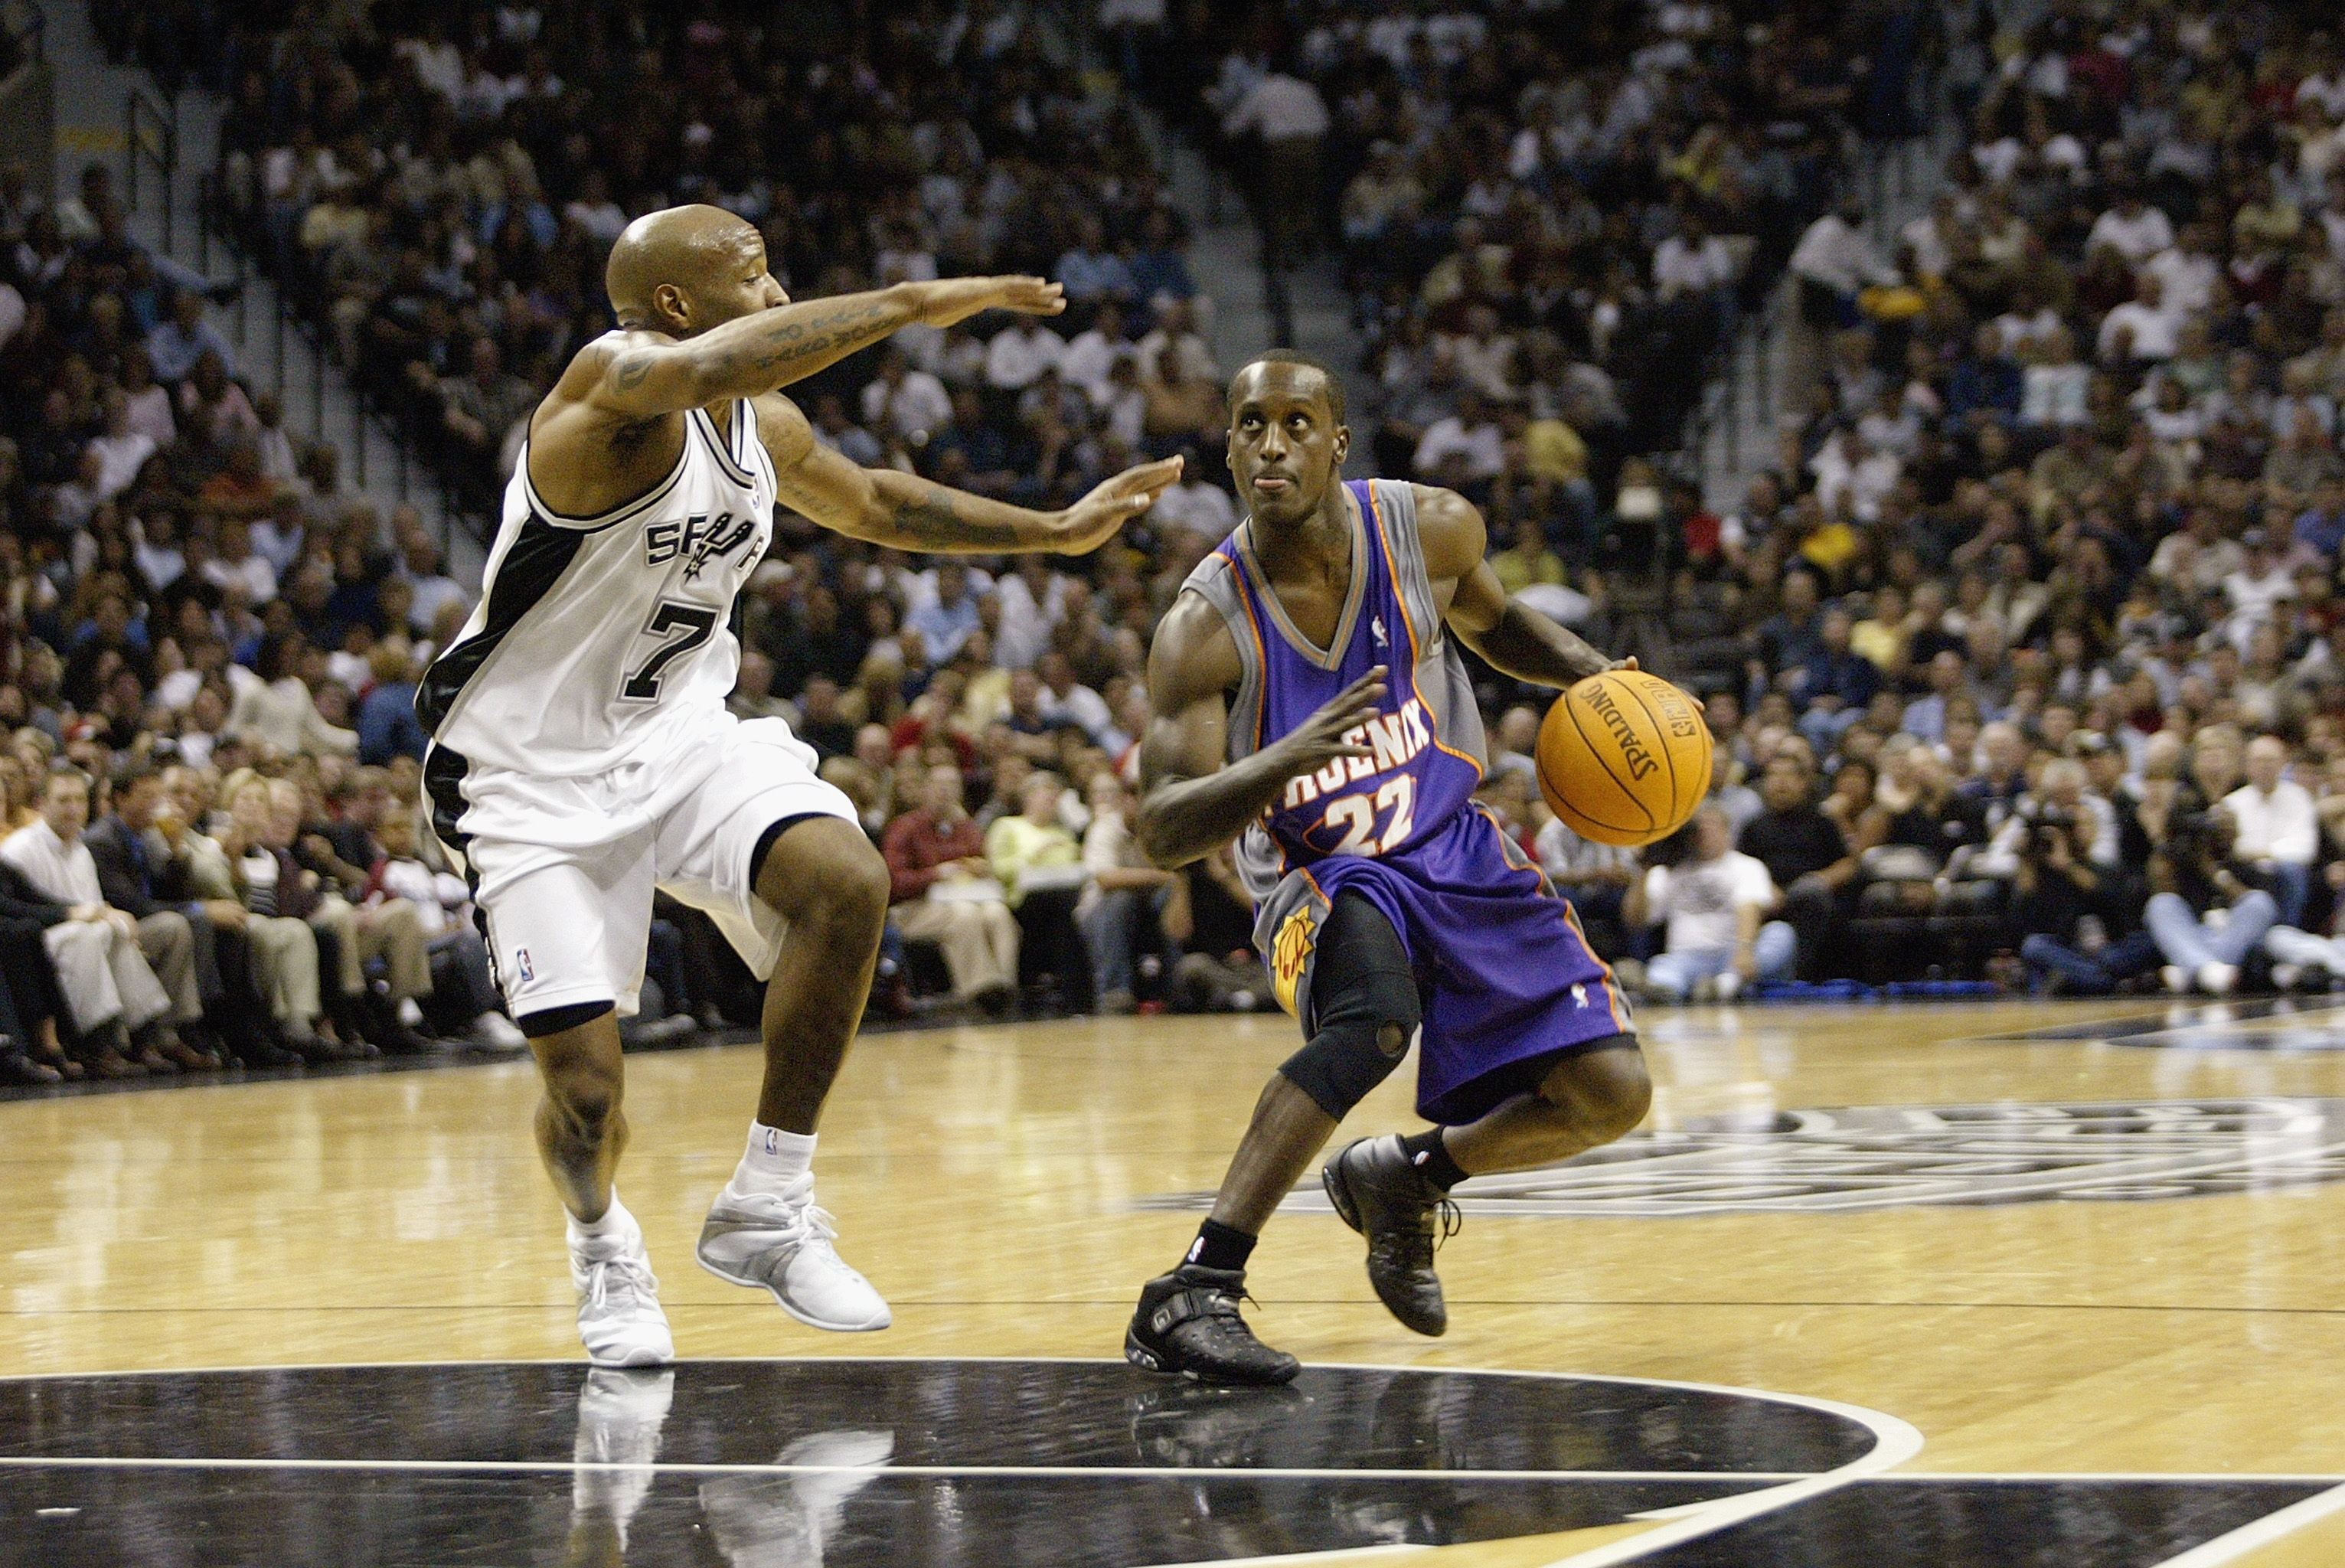 SAN ANTONIO - OCTOBER 28:  Brevin Knight #22 of the Phoenix Suns is defended by Anthony Carter #7 of the San Antonio Spurs on October 28, 2003 at the SBC Center in San Antonio, Texas.  The Spurs won 83-82.  NOTE TO USER: User expressly acknowledges and ag